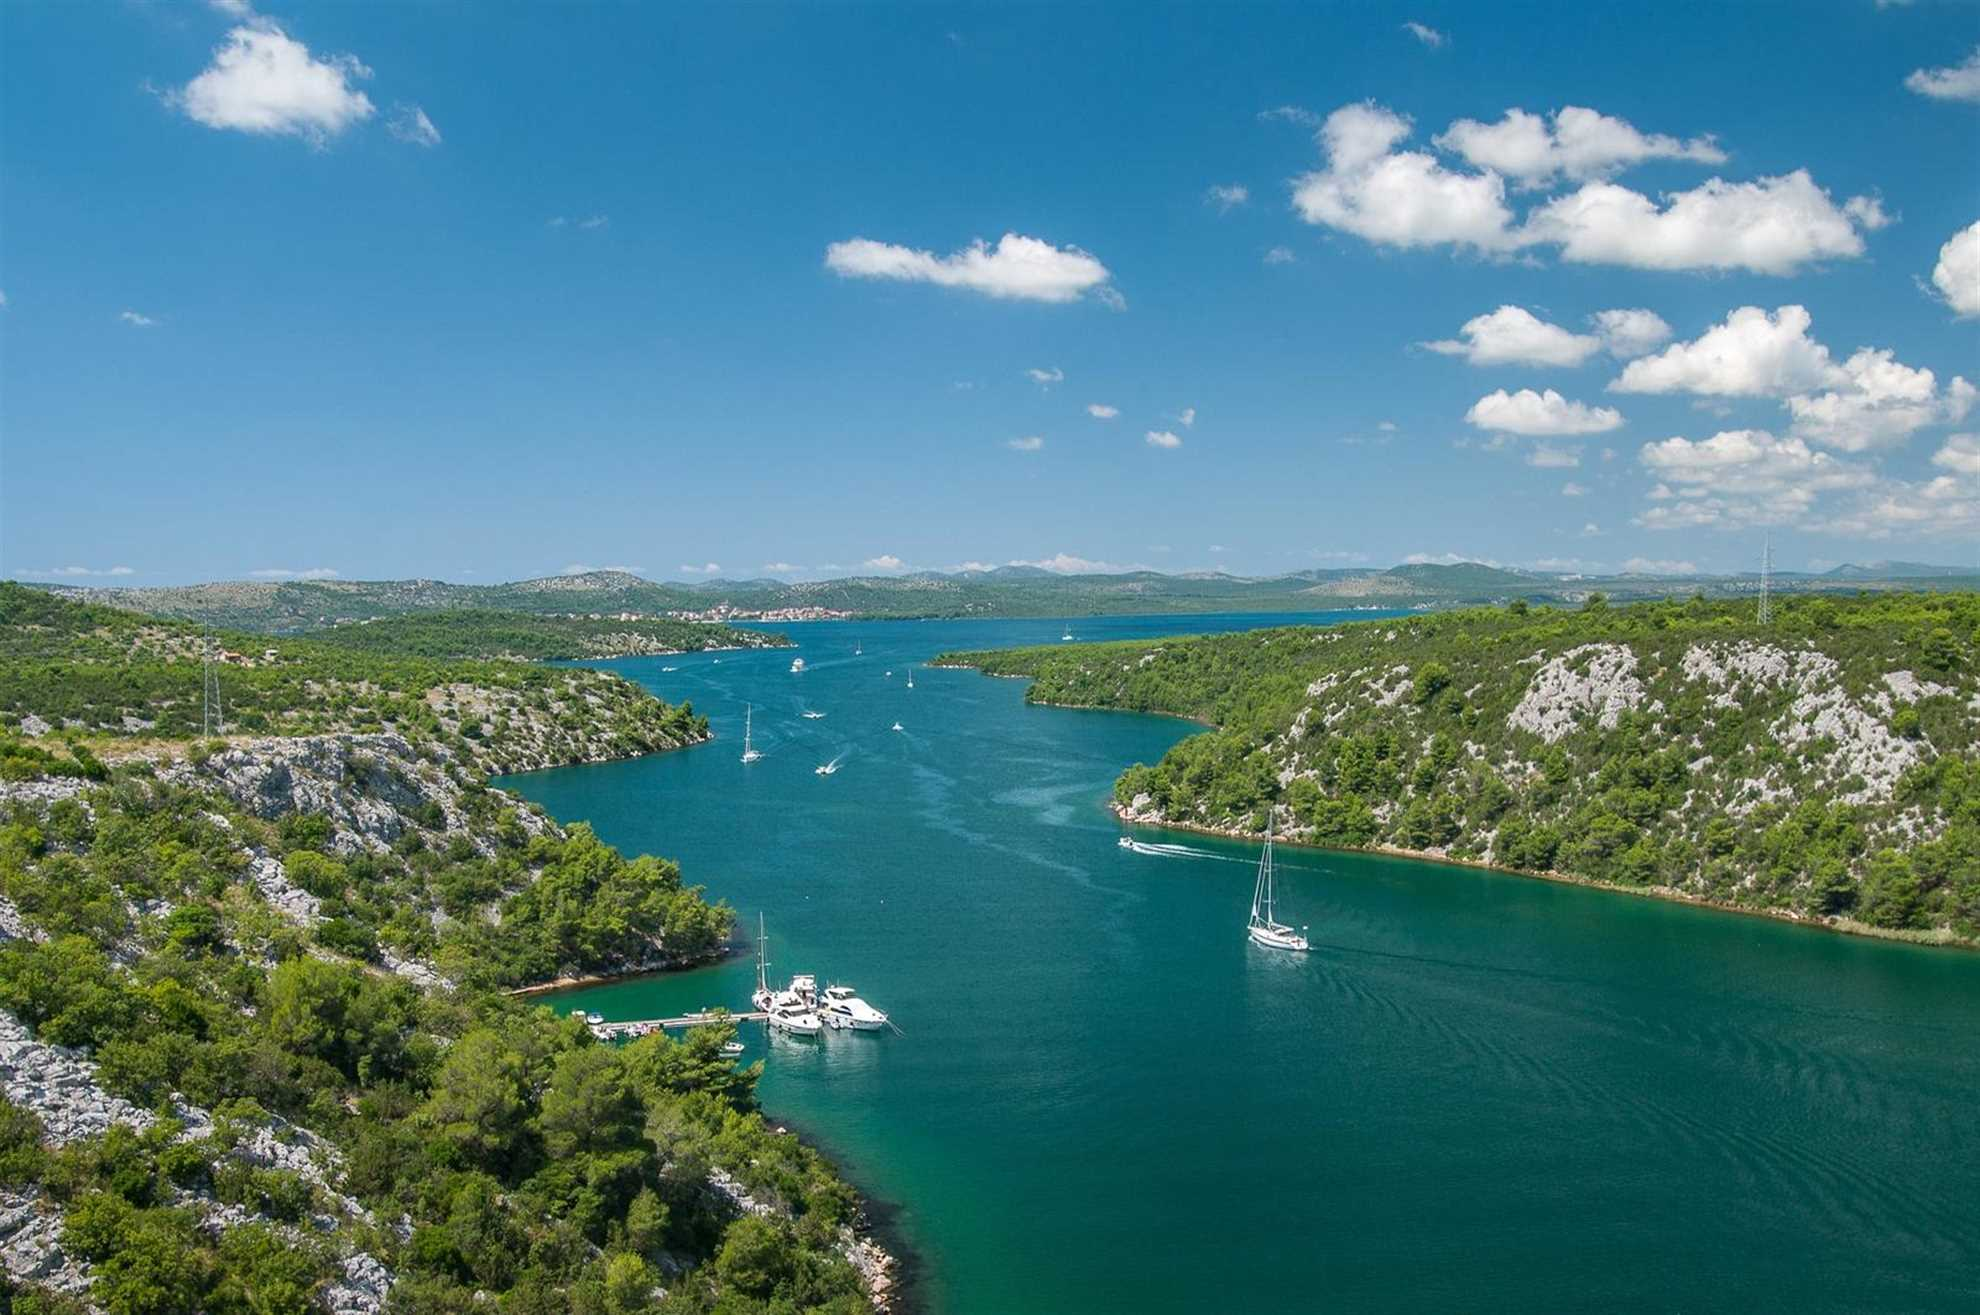 Krka River, Central Dalmatia